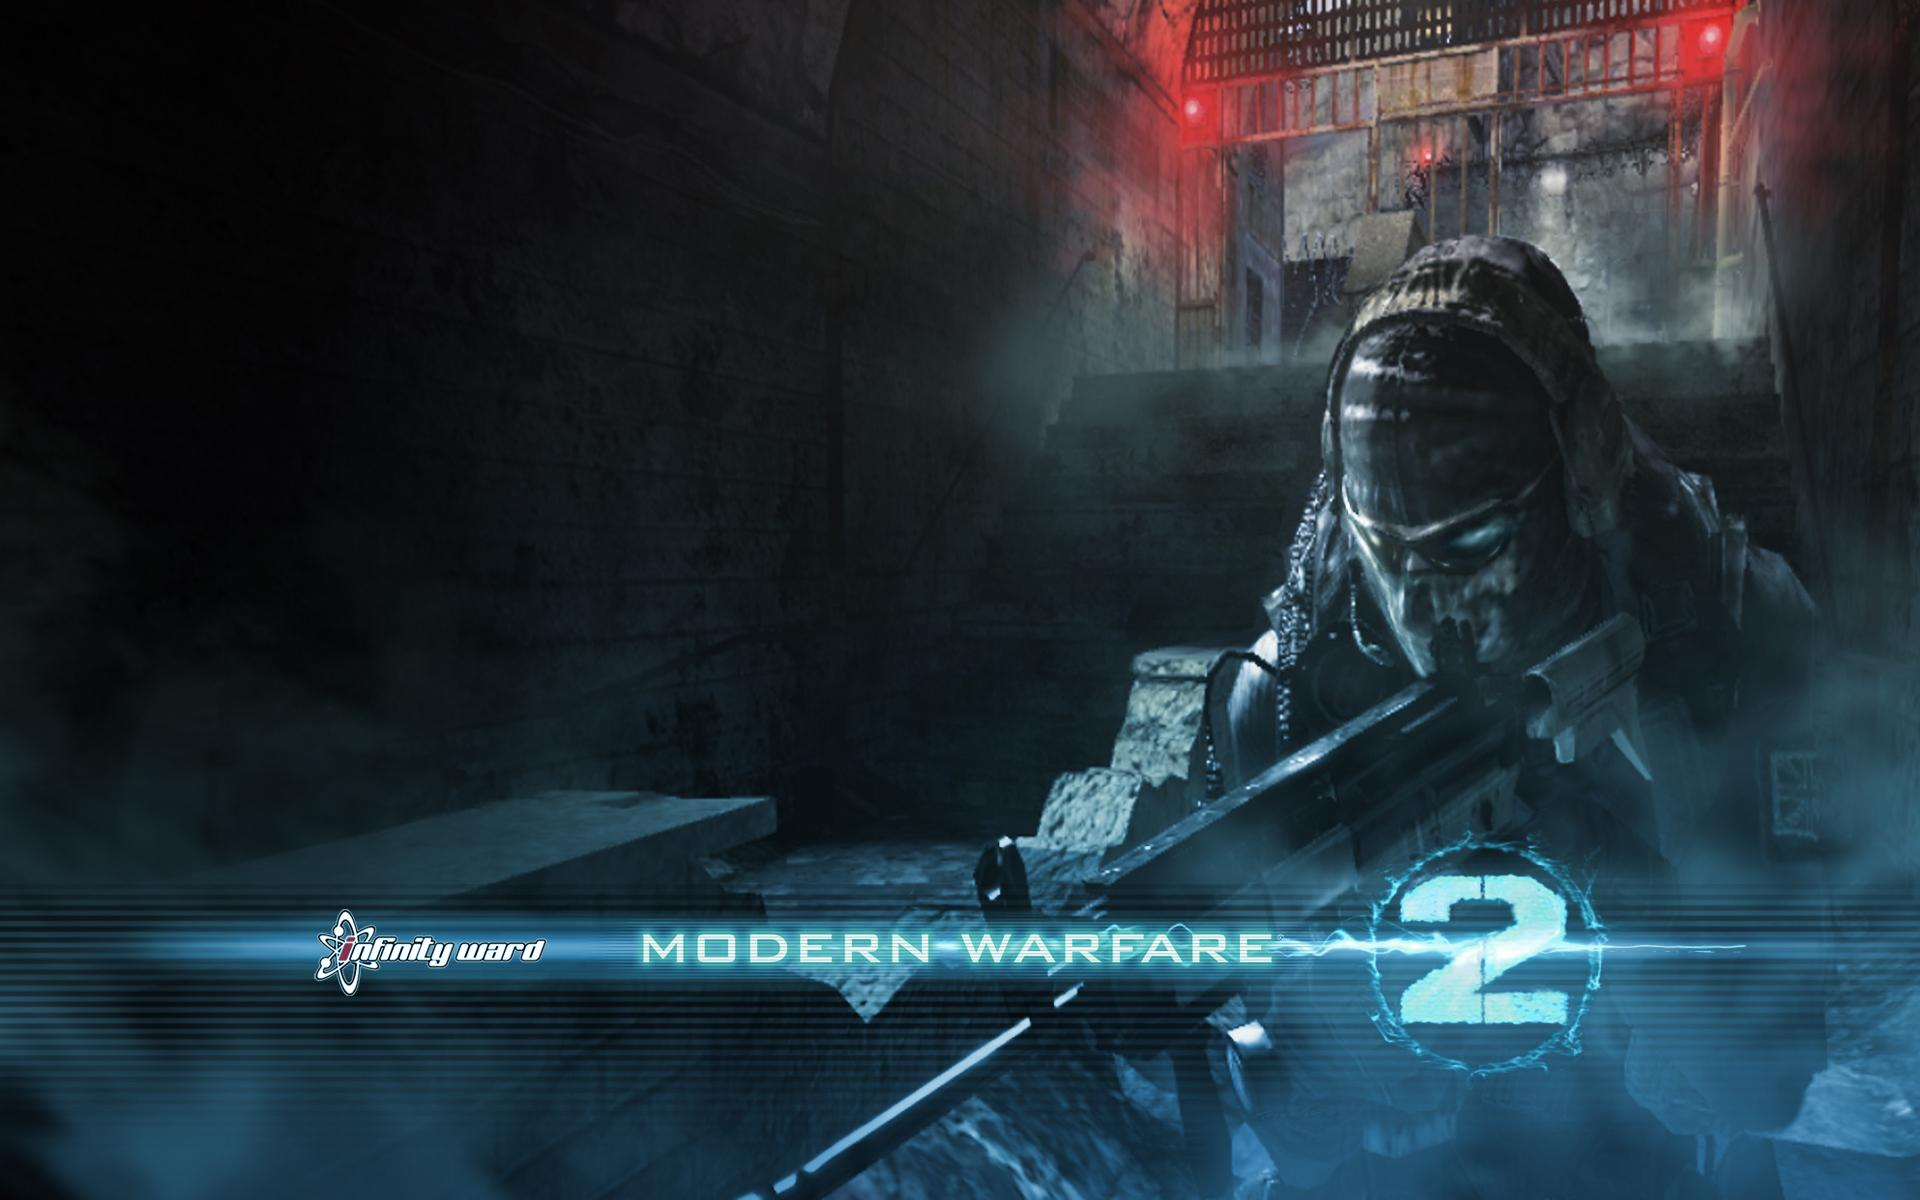 Call Of Duty Modern Warfare 2 Wallpaper 2 Wallpapersbq